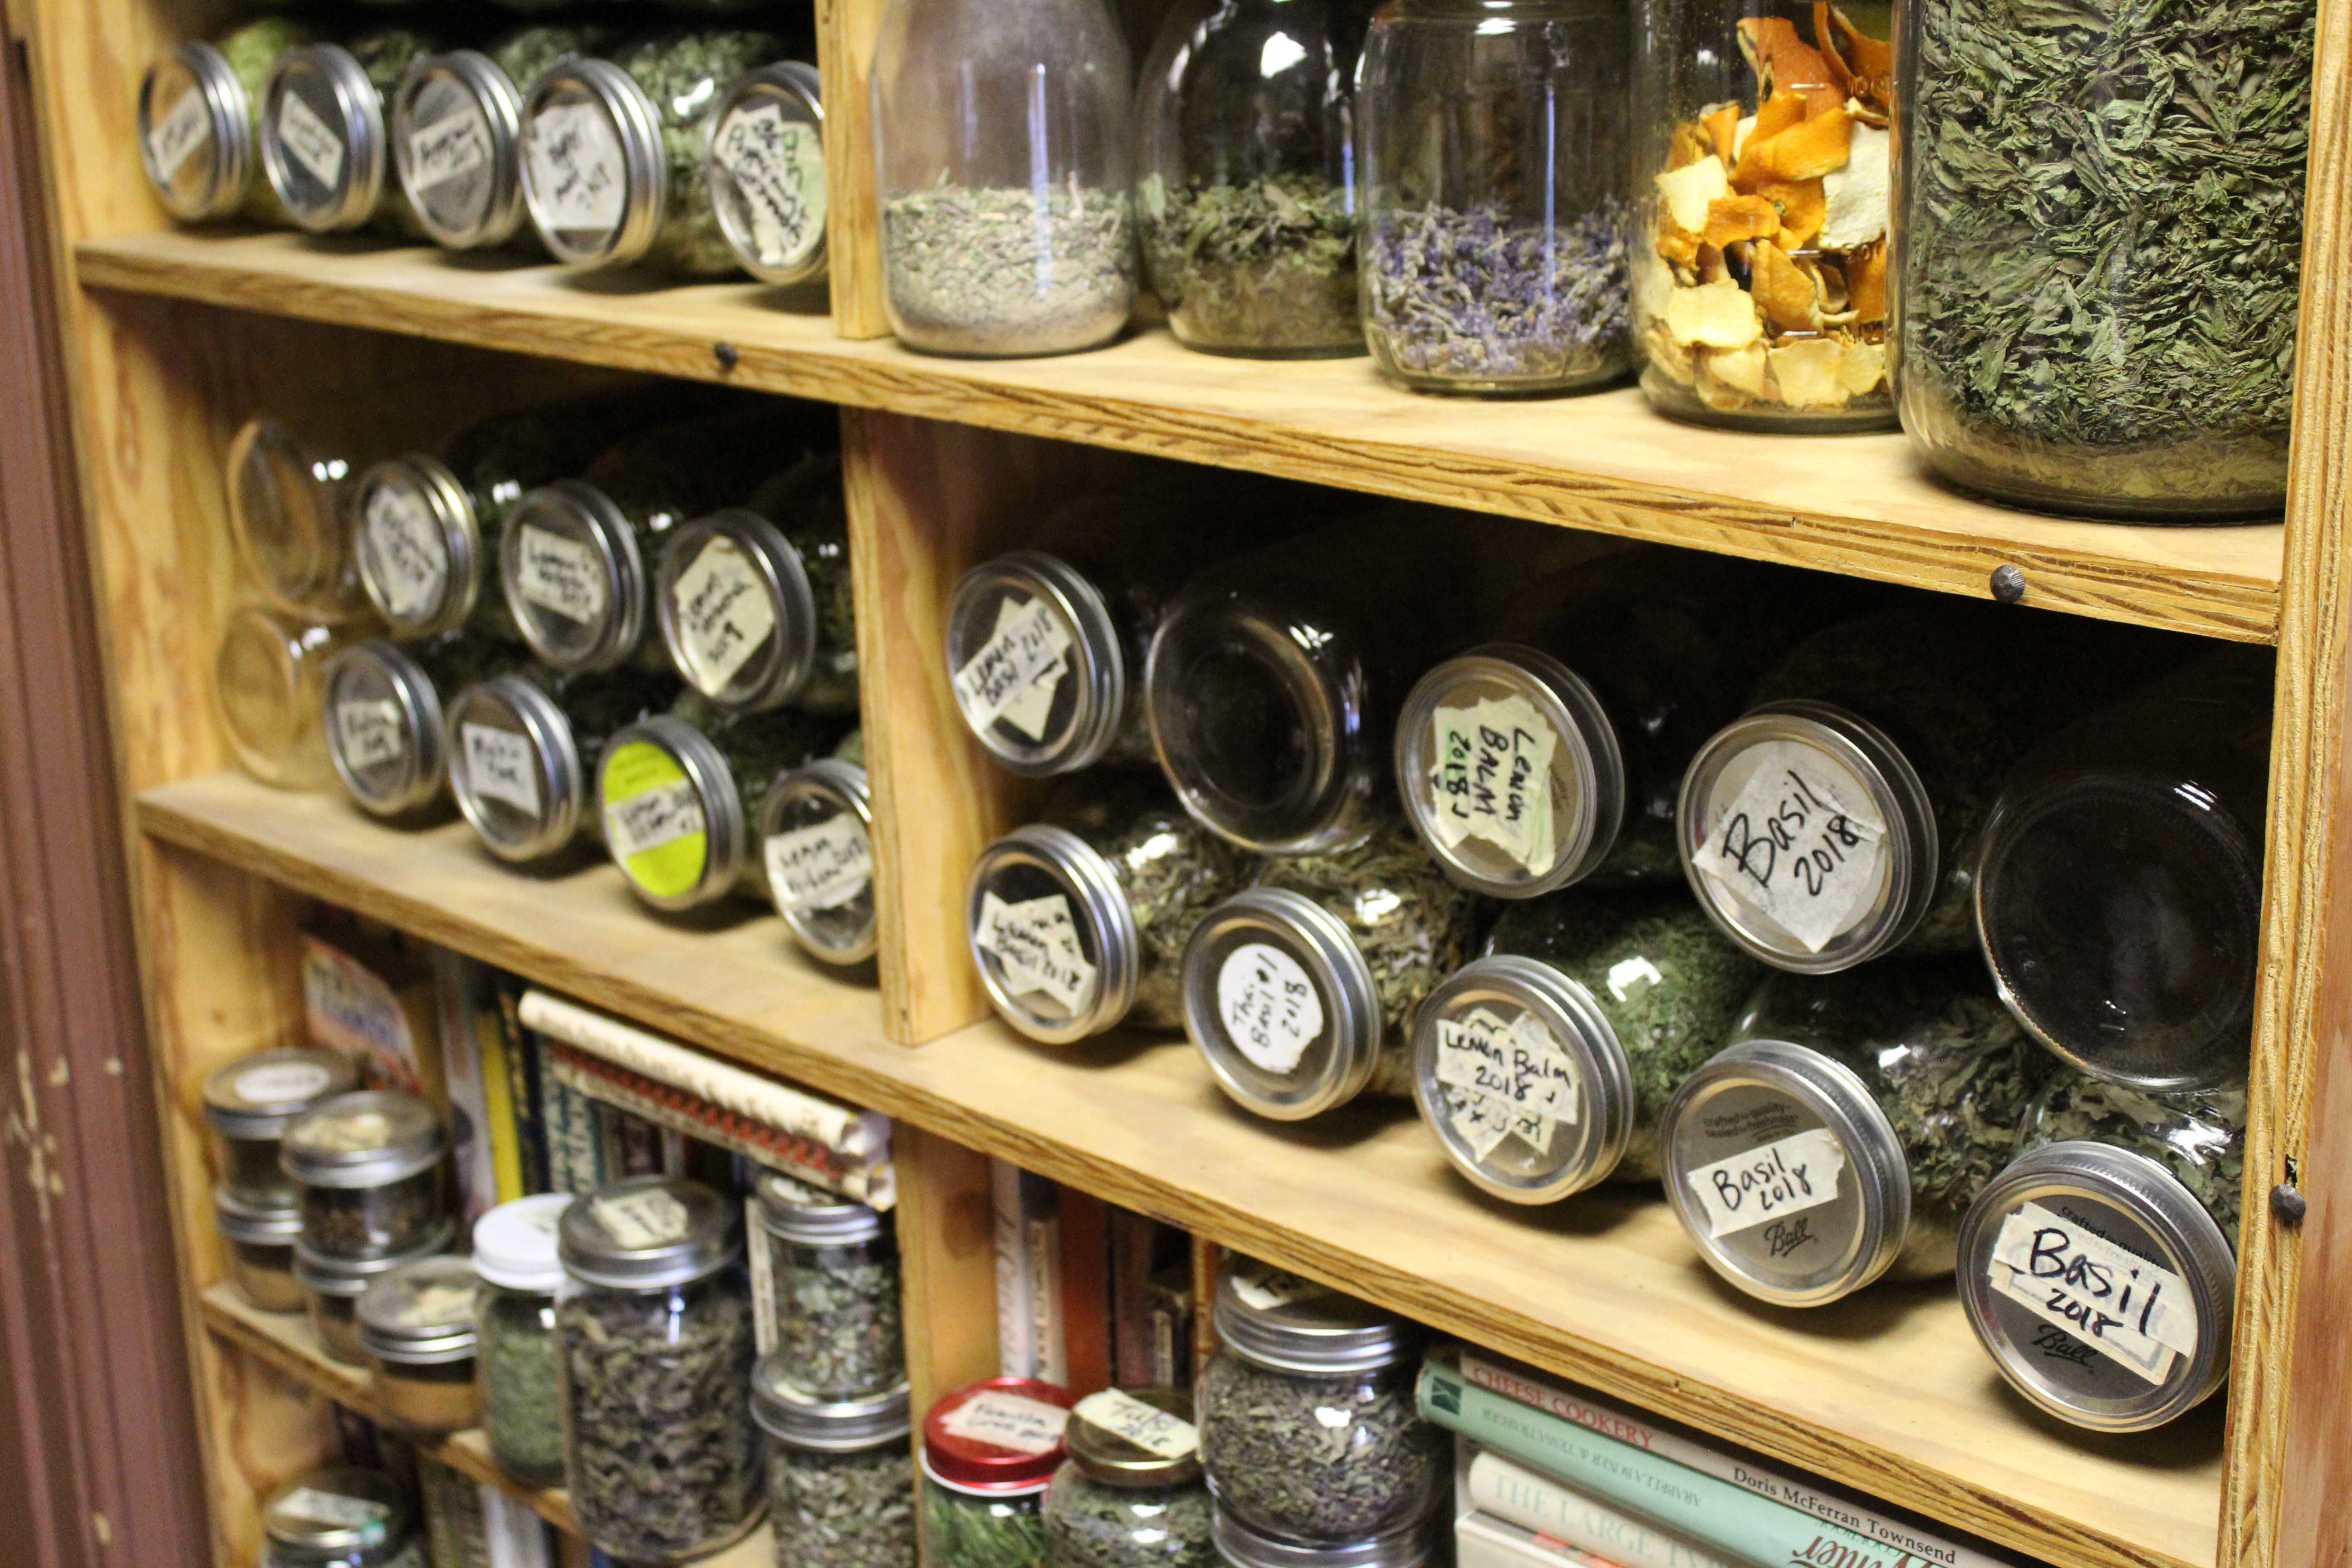 Photo of dried teas by Traffic Jam & Snug